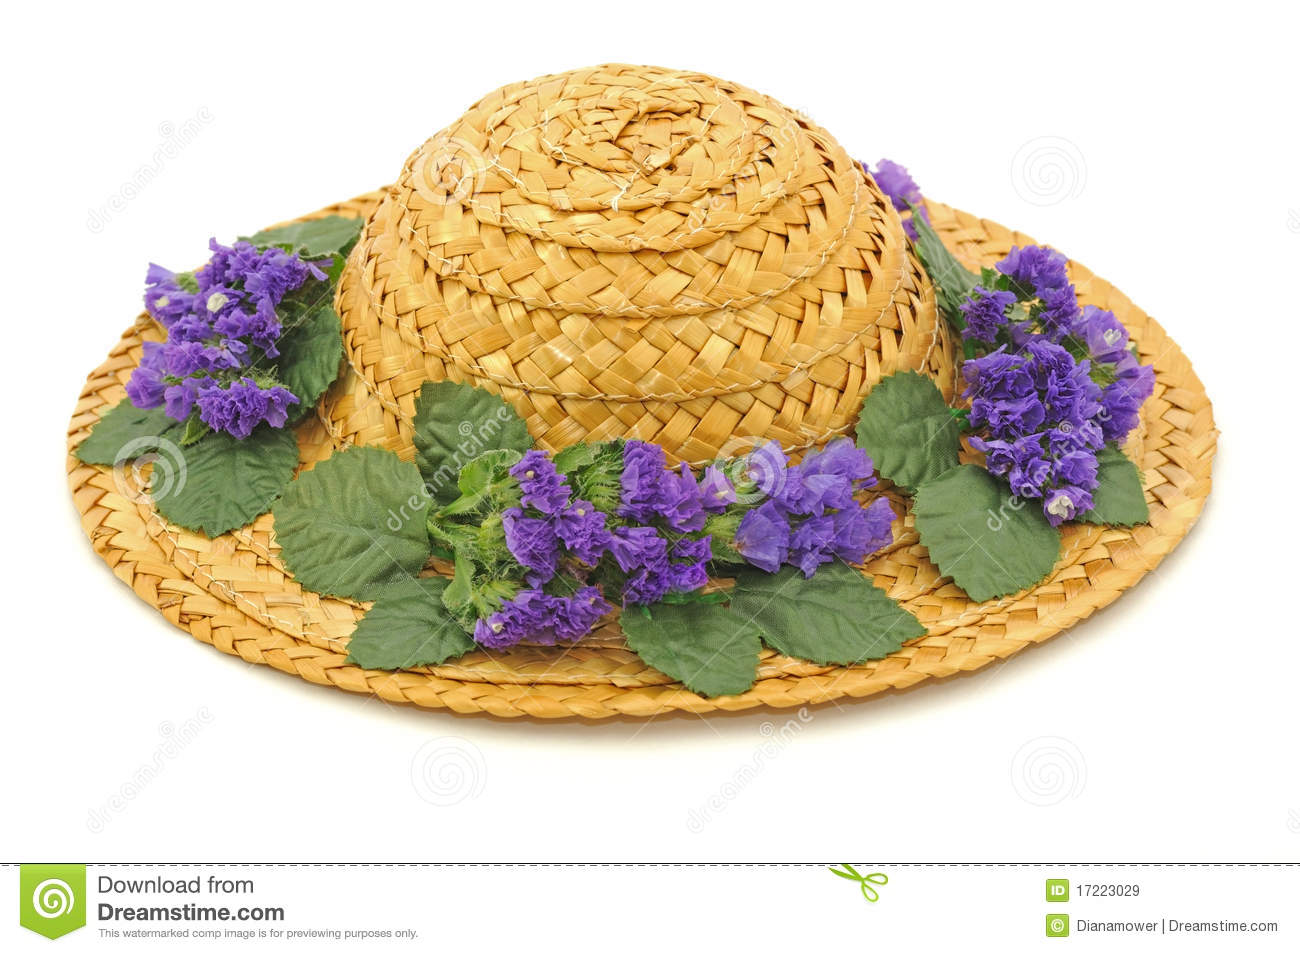 Straw hat with flowers stock image. Image of bonnet 34d048b8189